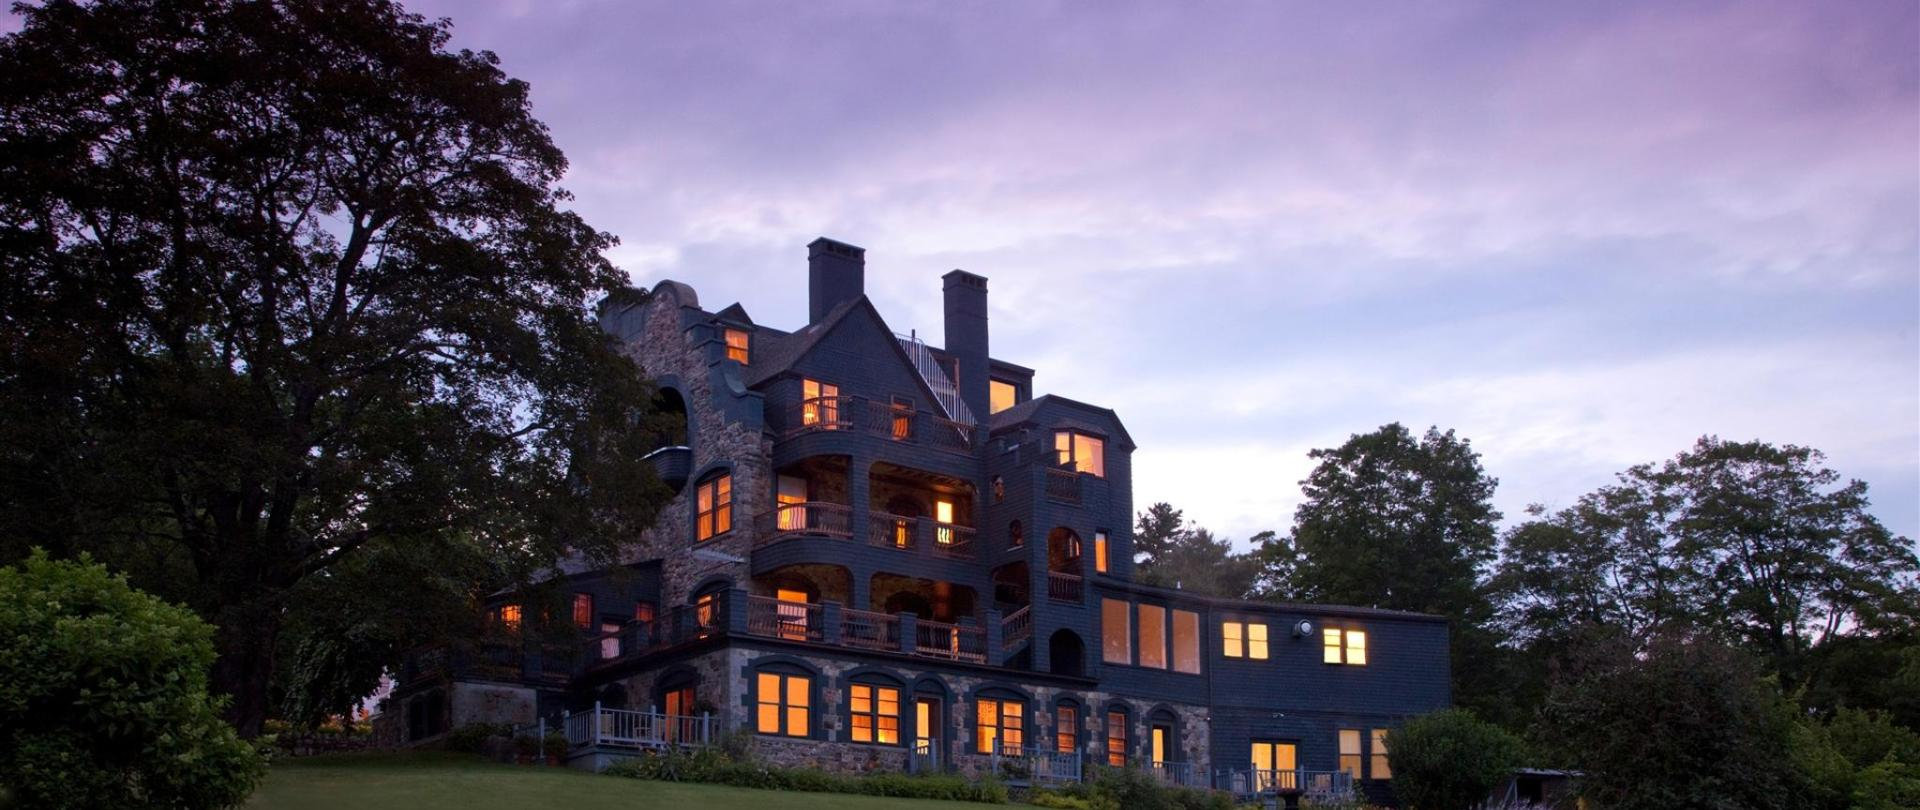 Norumbega Exterior from Back Lawn at Dusk